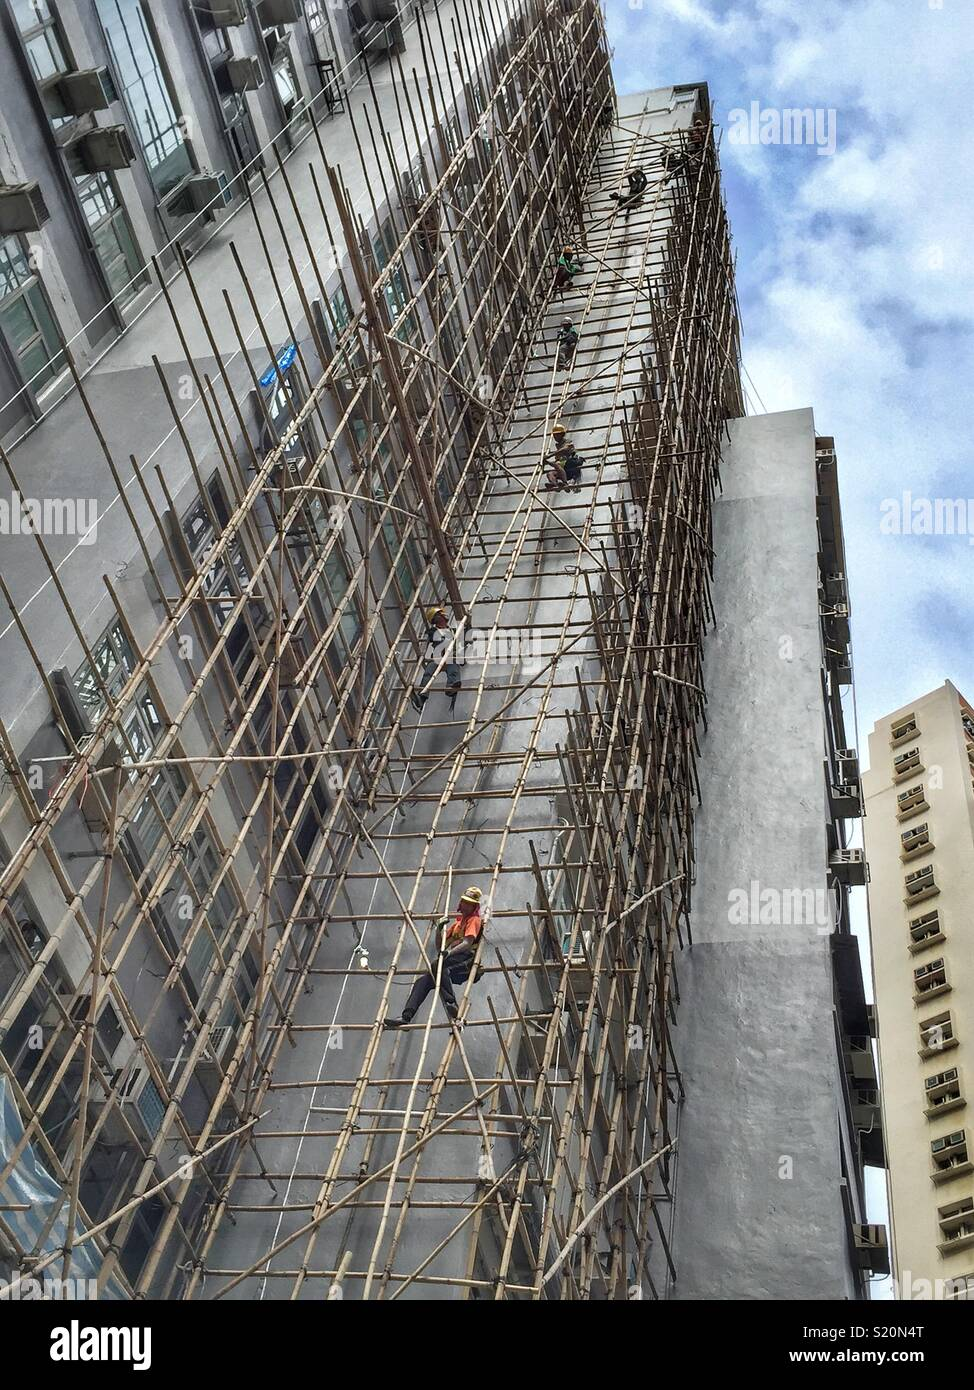 Workmen form a human chain to dismantle bamboo scaffolding after renovations on a highrise residential building in Wan Chai, Hong Kong Island - Stock Image